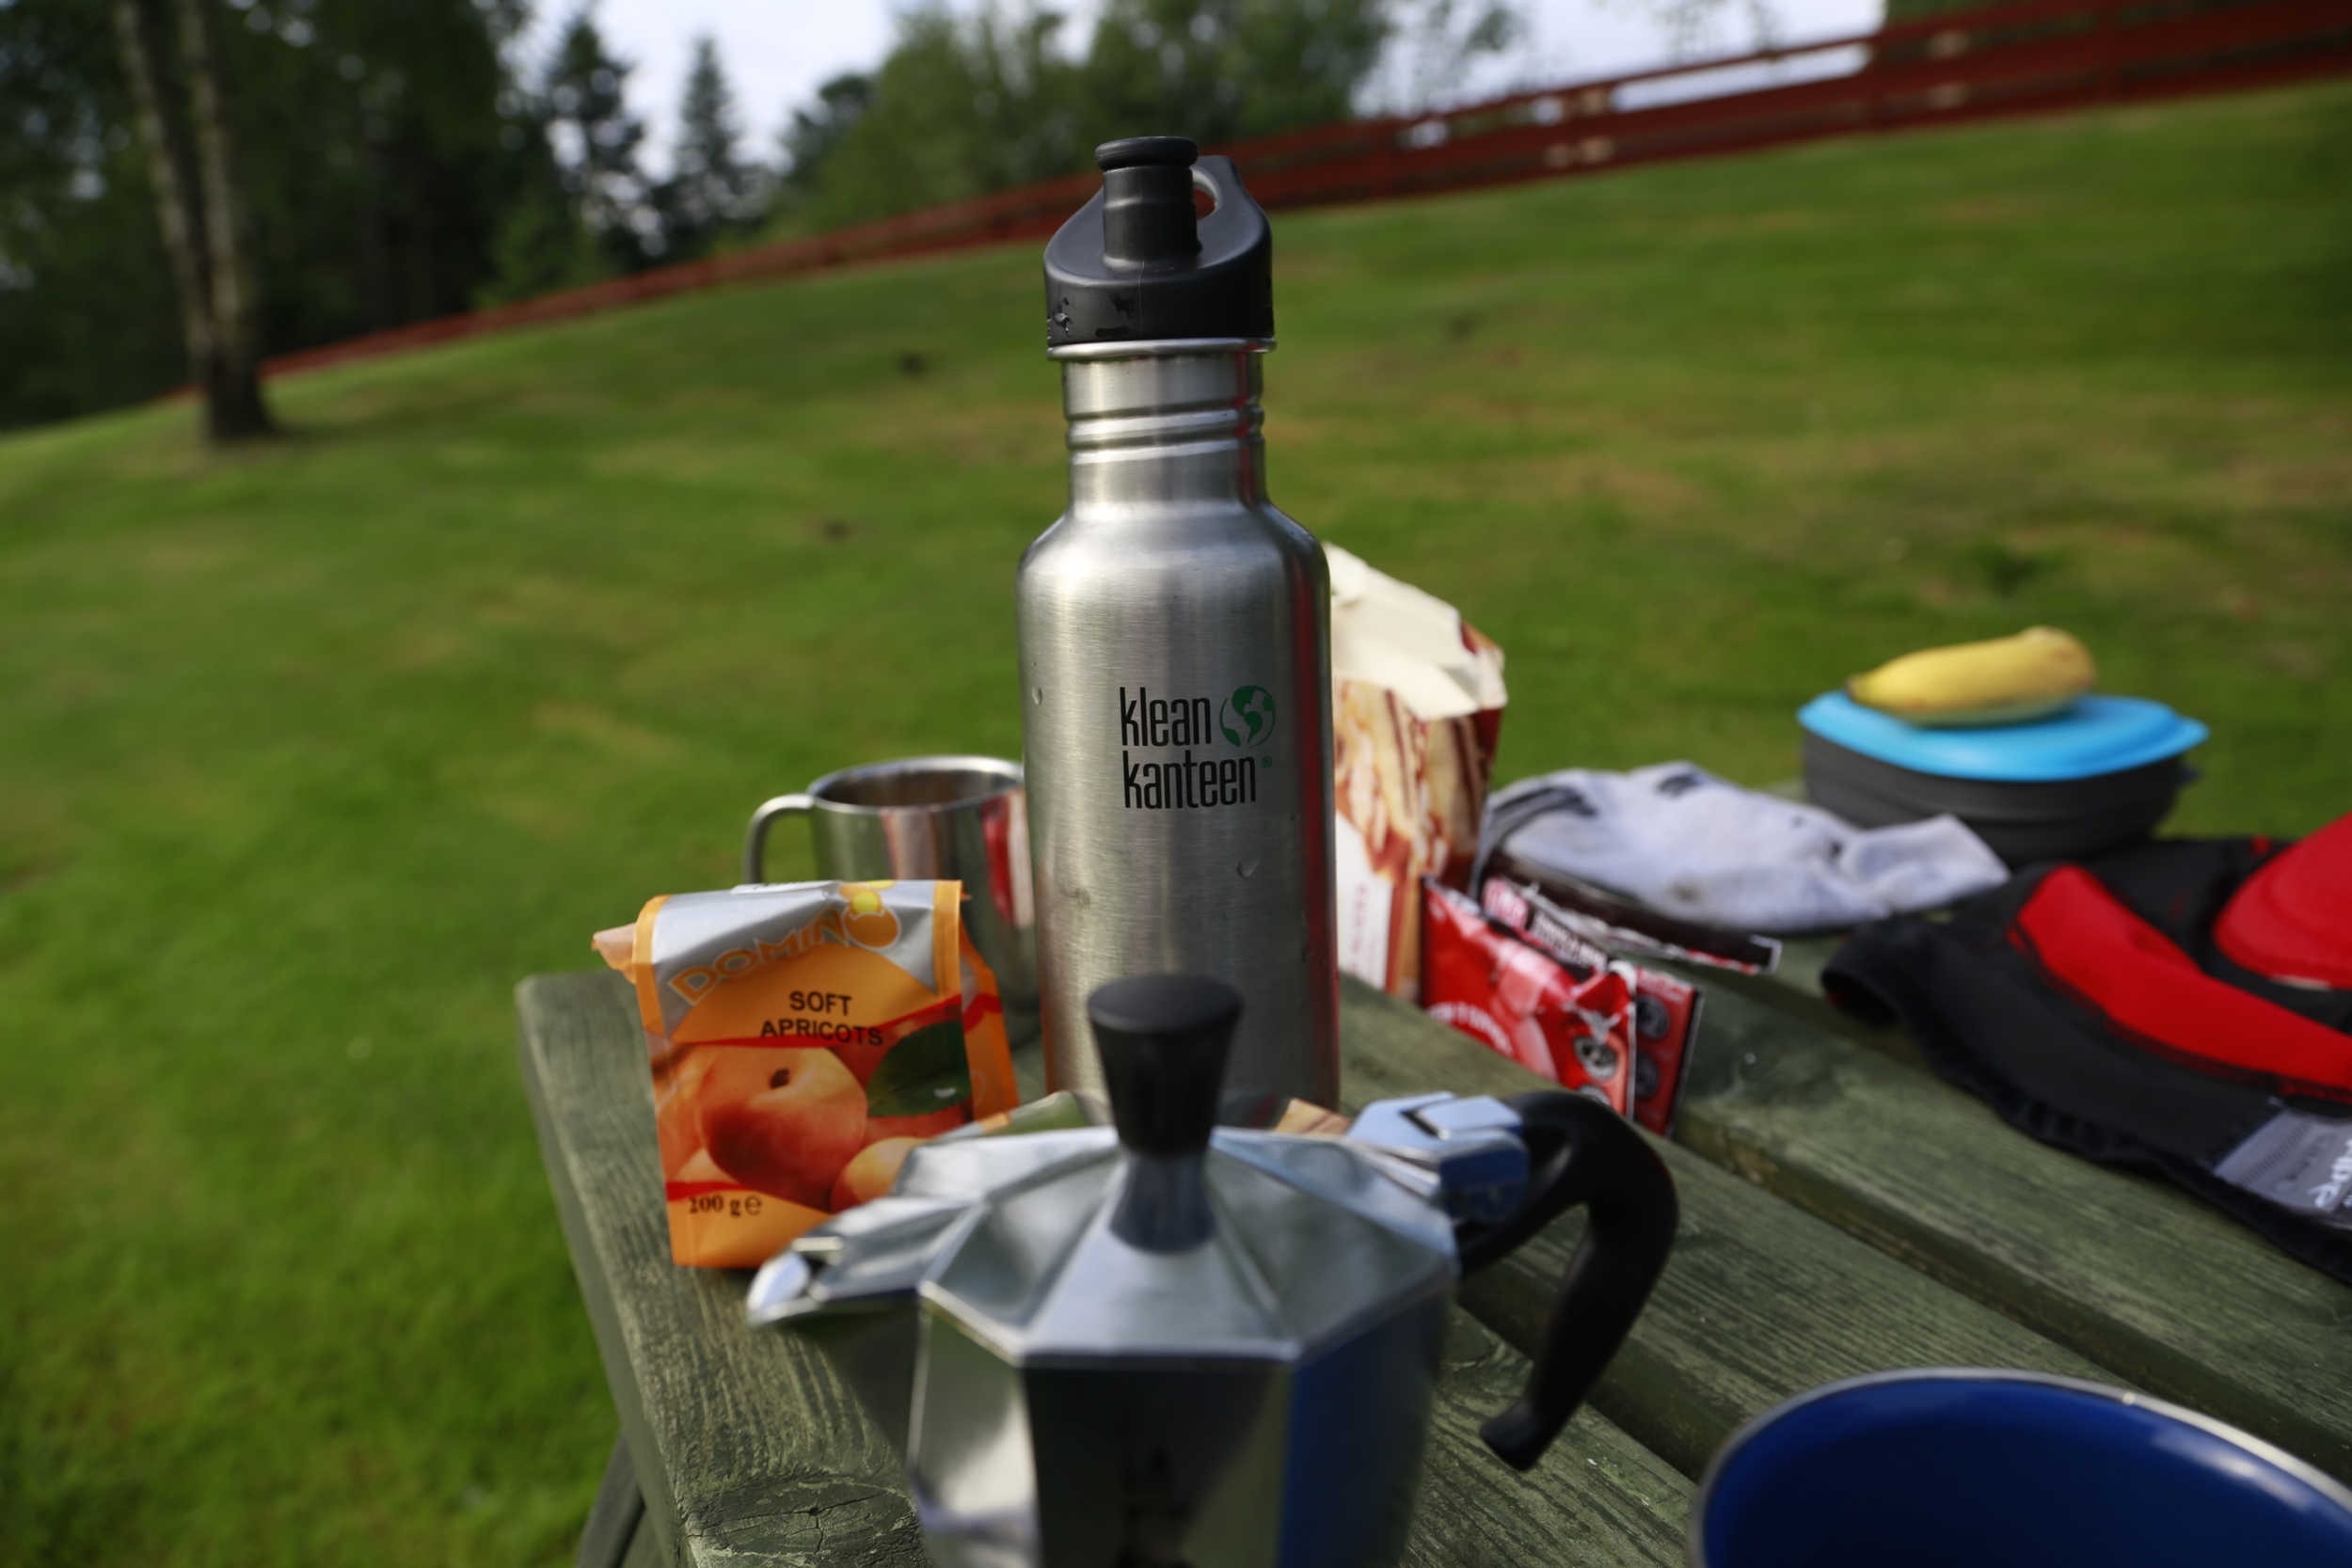 klean kanteen, klean, kanteen, bottle, 27oz, 800ml, bicycle touring, camping, cycle touring, tour, camp site,